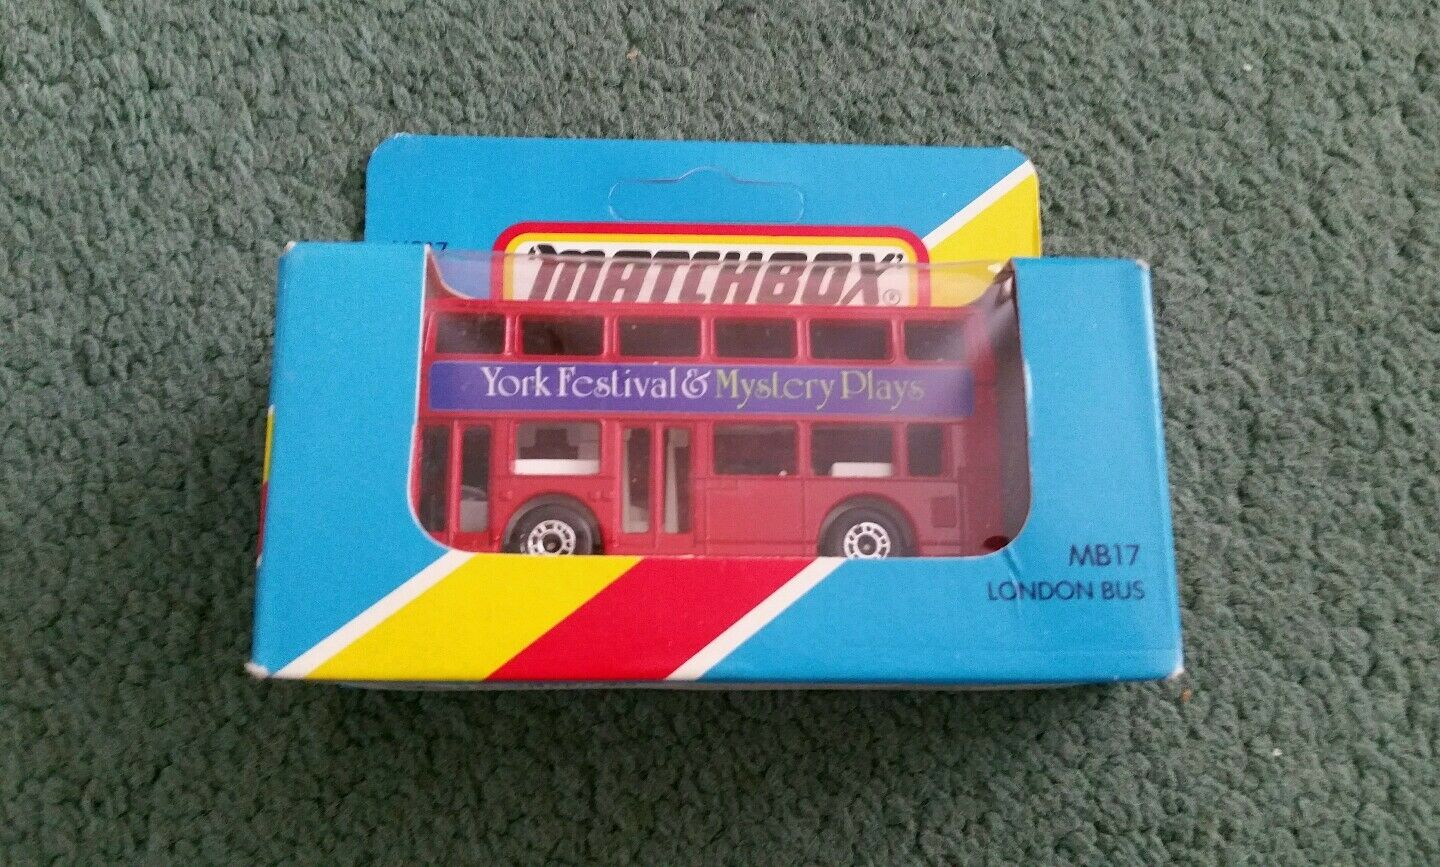 MATCHBOX LONDON BUS YORK FESTIVAL & MYSTERY PLAYS MB17 RED 1981 OPENED BOX MINT